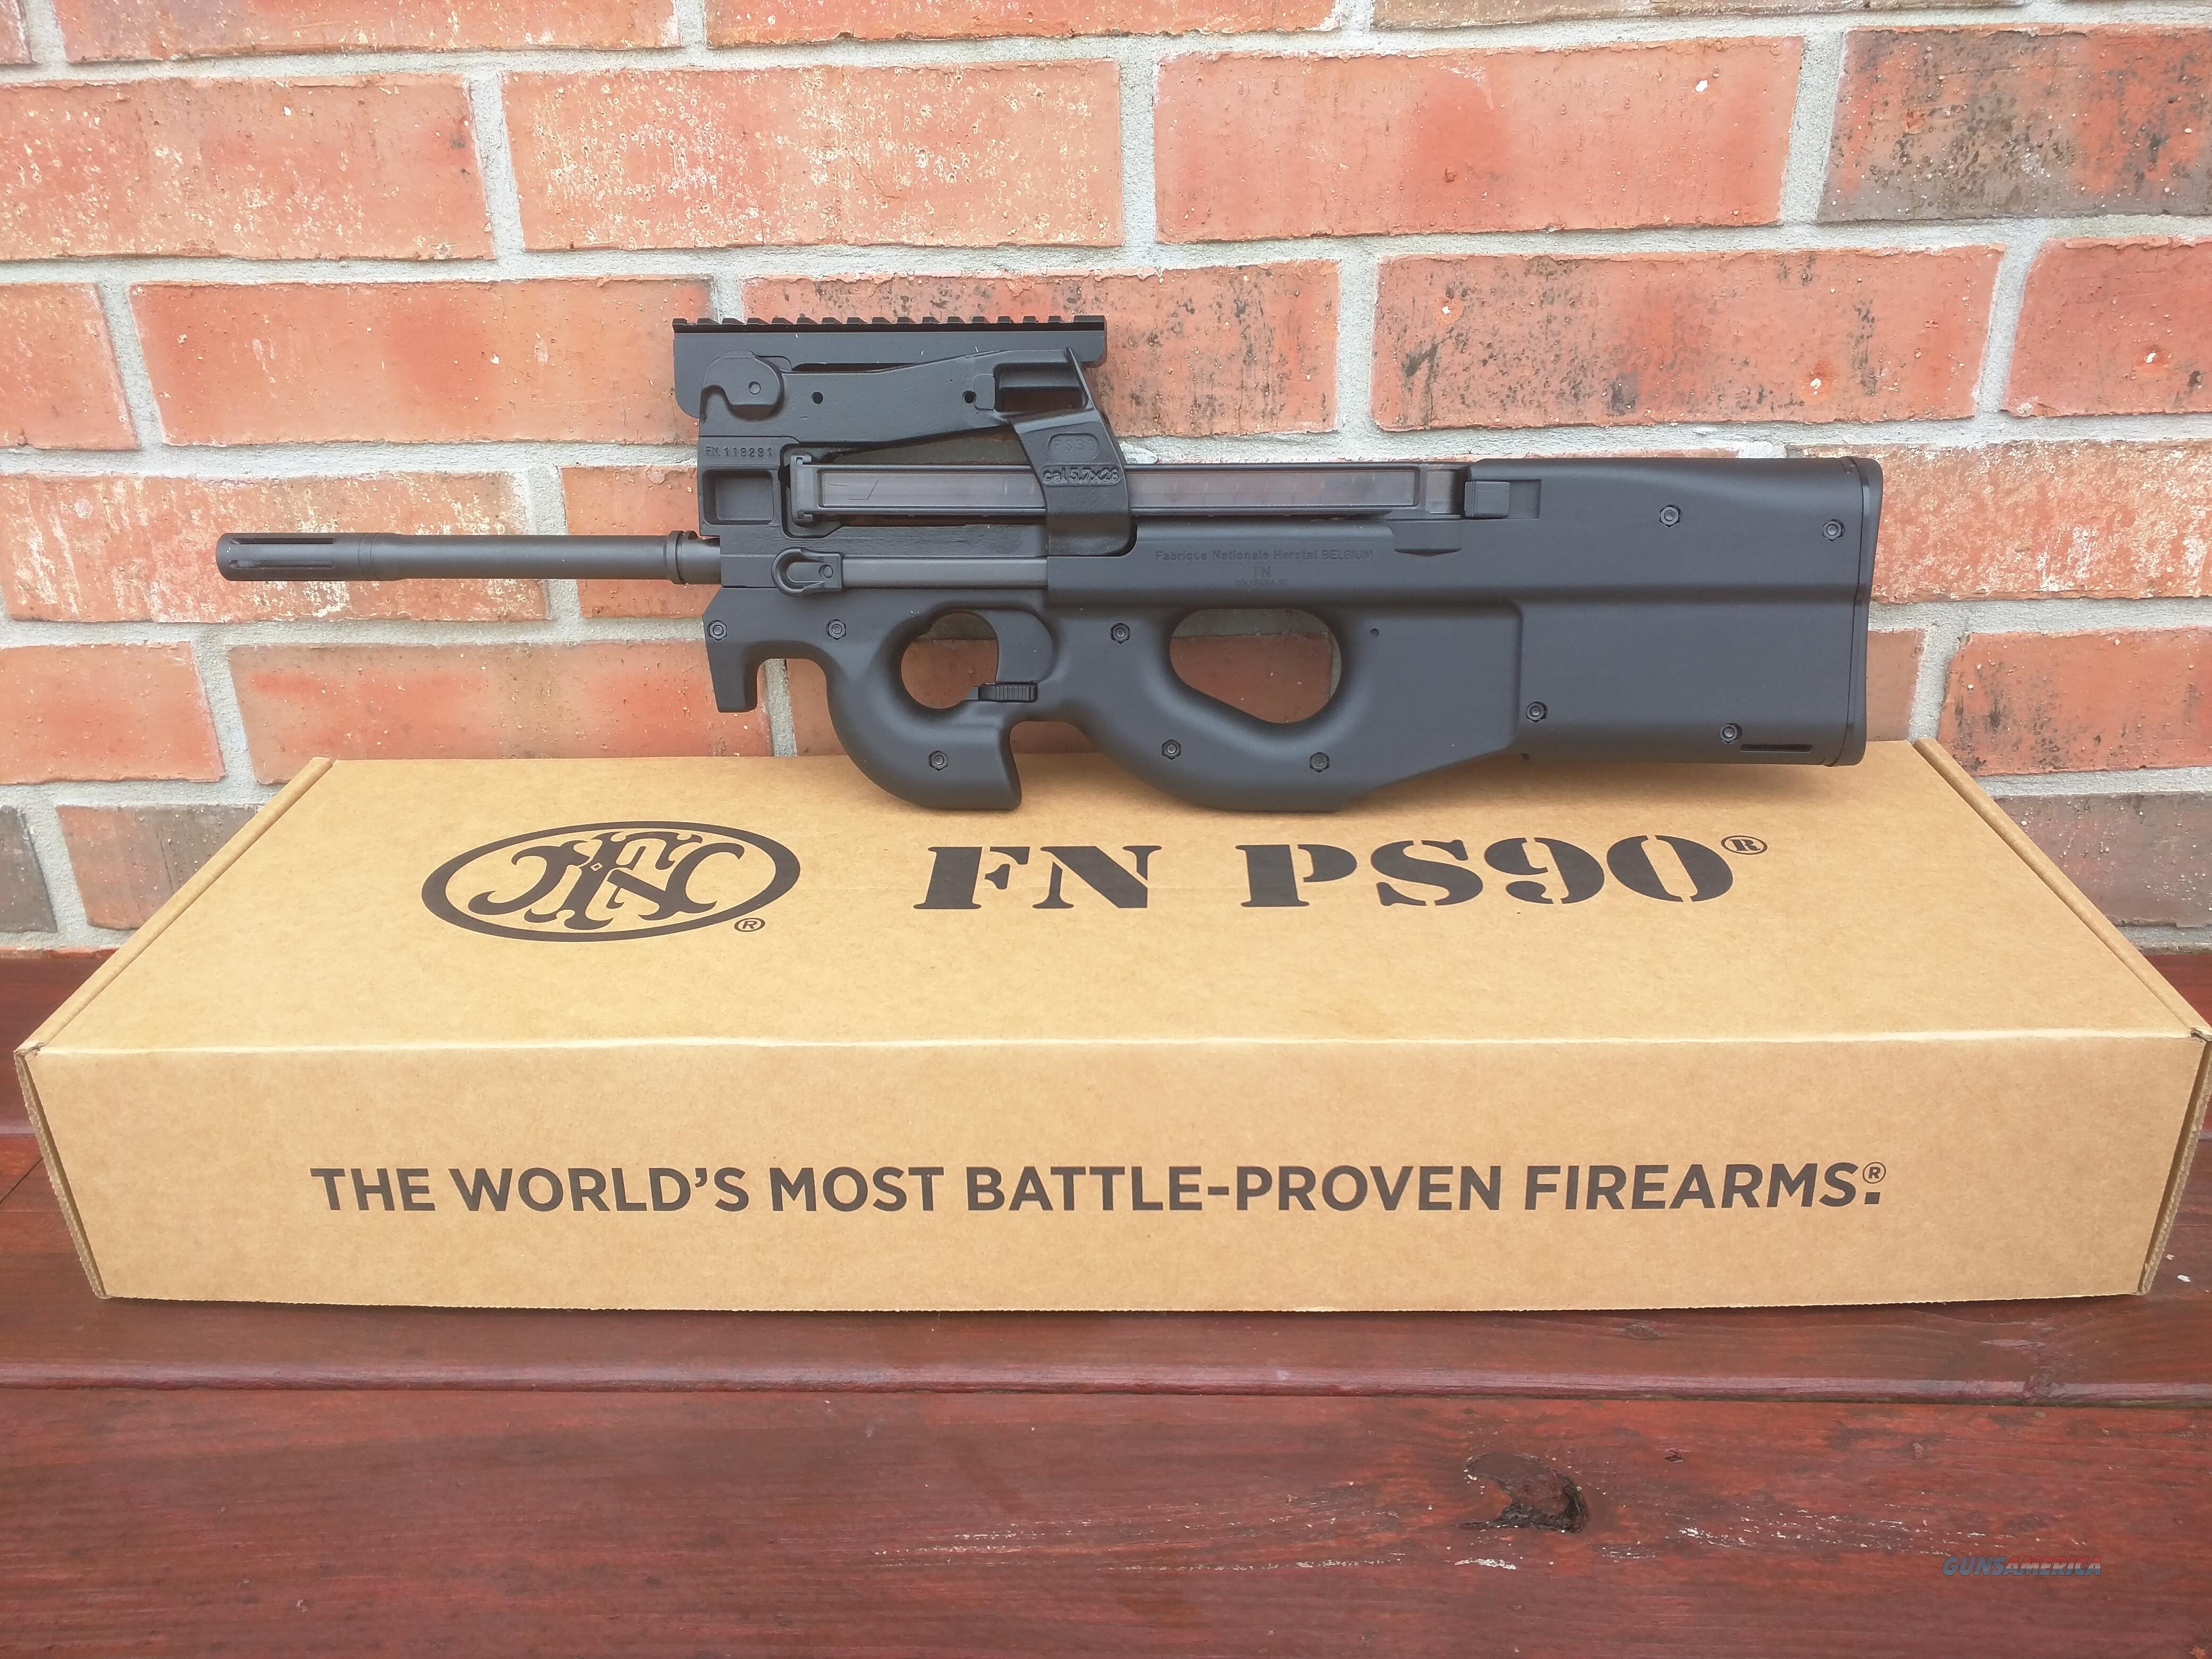 Ps90 For Sale >> Fn Fnh Ps90 Ps 90 5 7x28 Bullpup 16 Hard To Get Nib Lightweight Ambi Controls Great Trigger Rail For Optics 30rd Mag Free Layaway